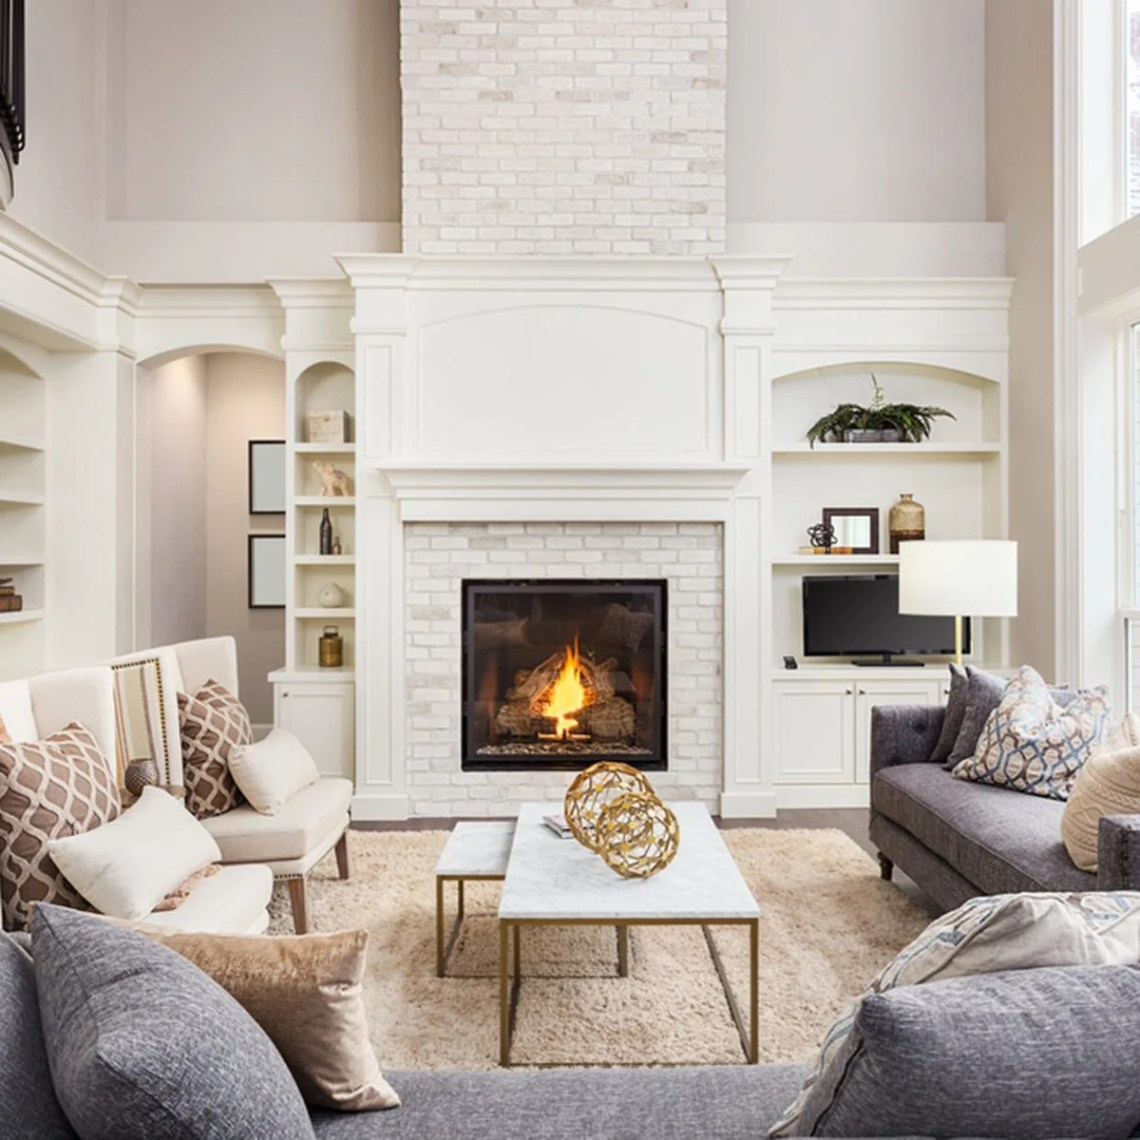 15 Stunning Accent Wall Ideas You Can Do Family Handyman